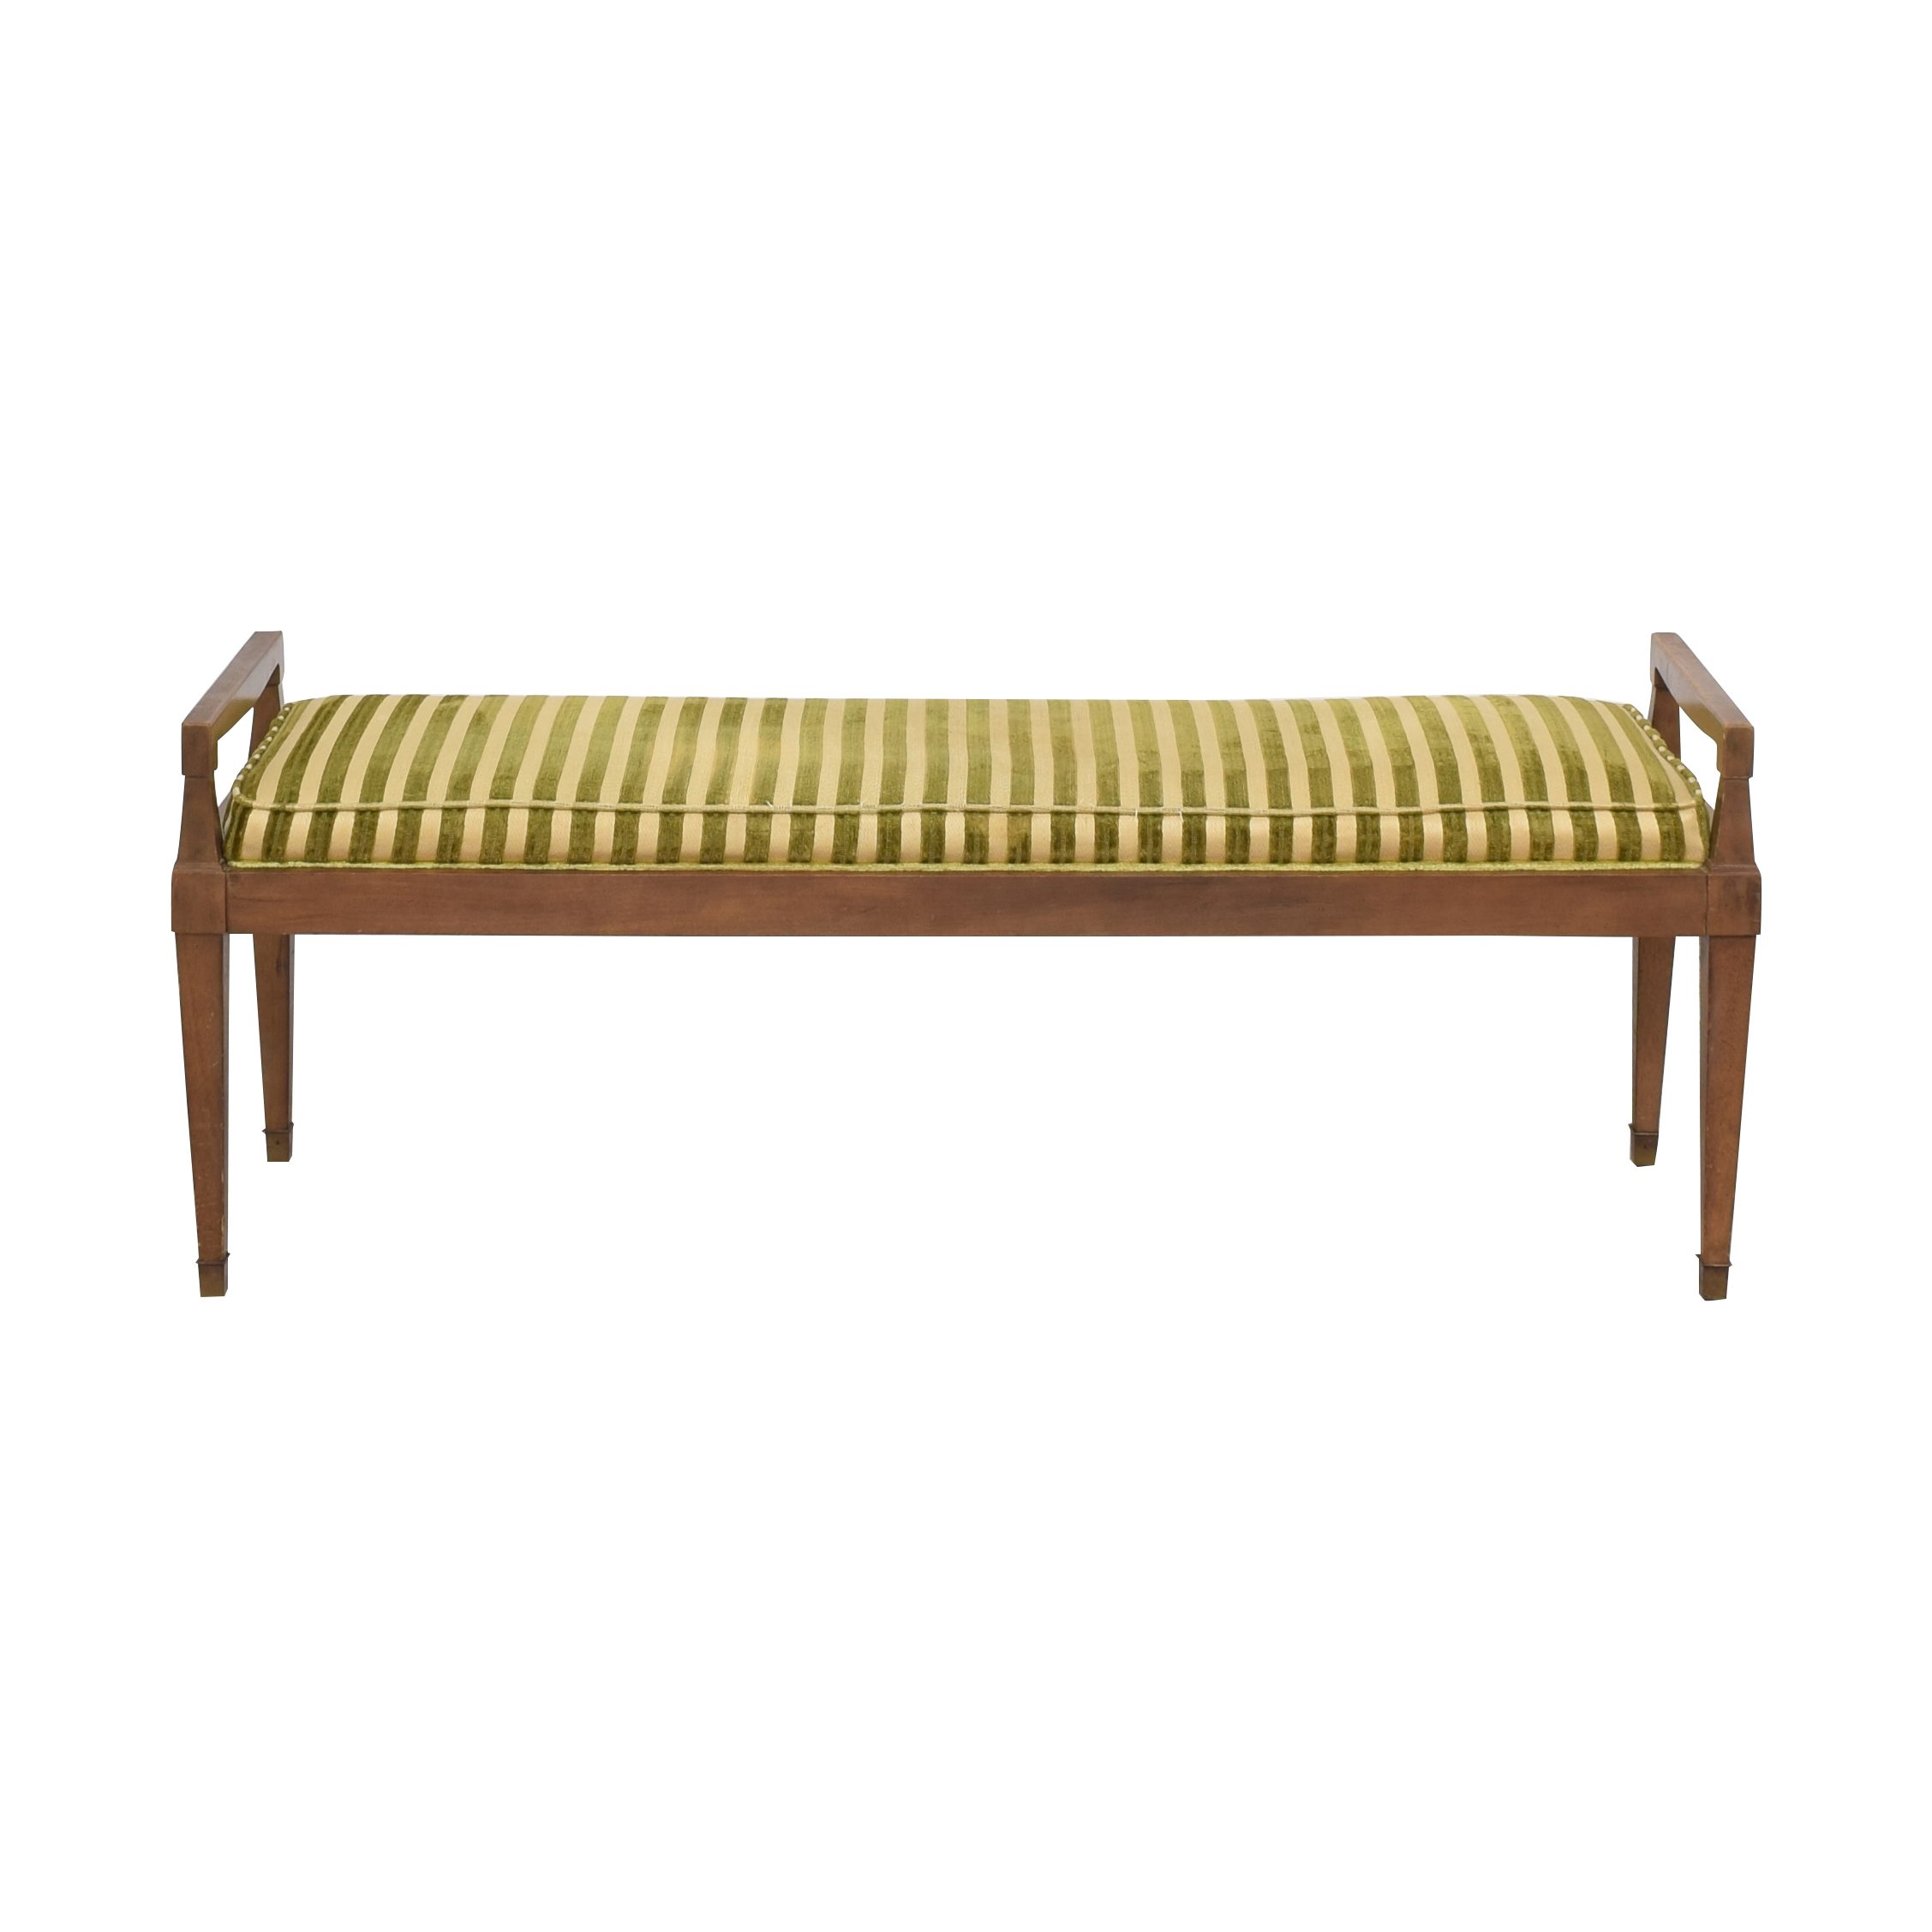 Drexel Vintage Drexel Cushioned Bench second hand